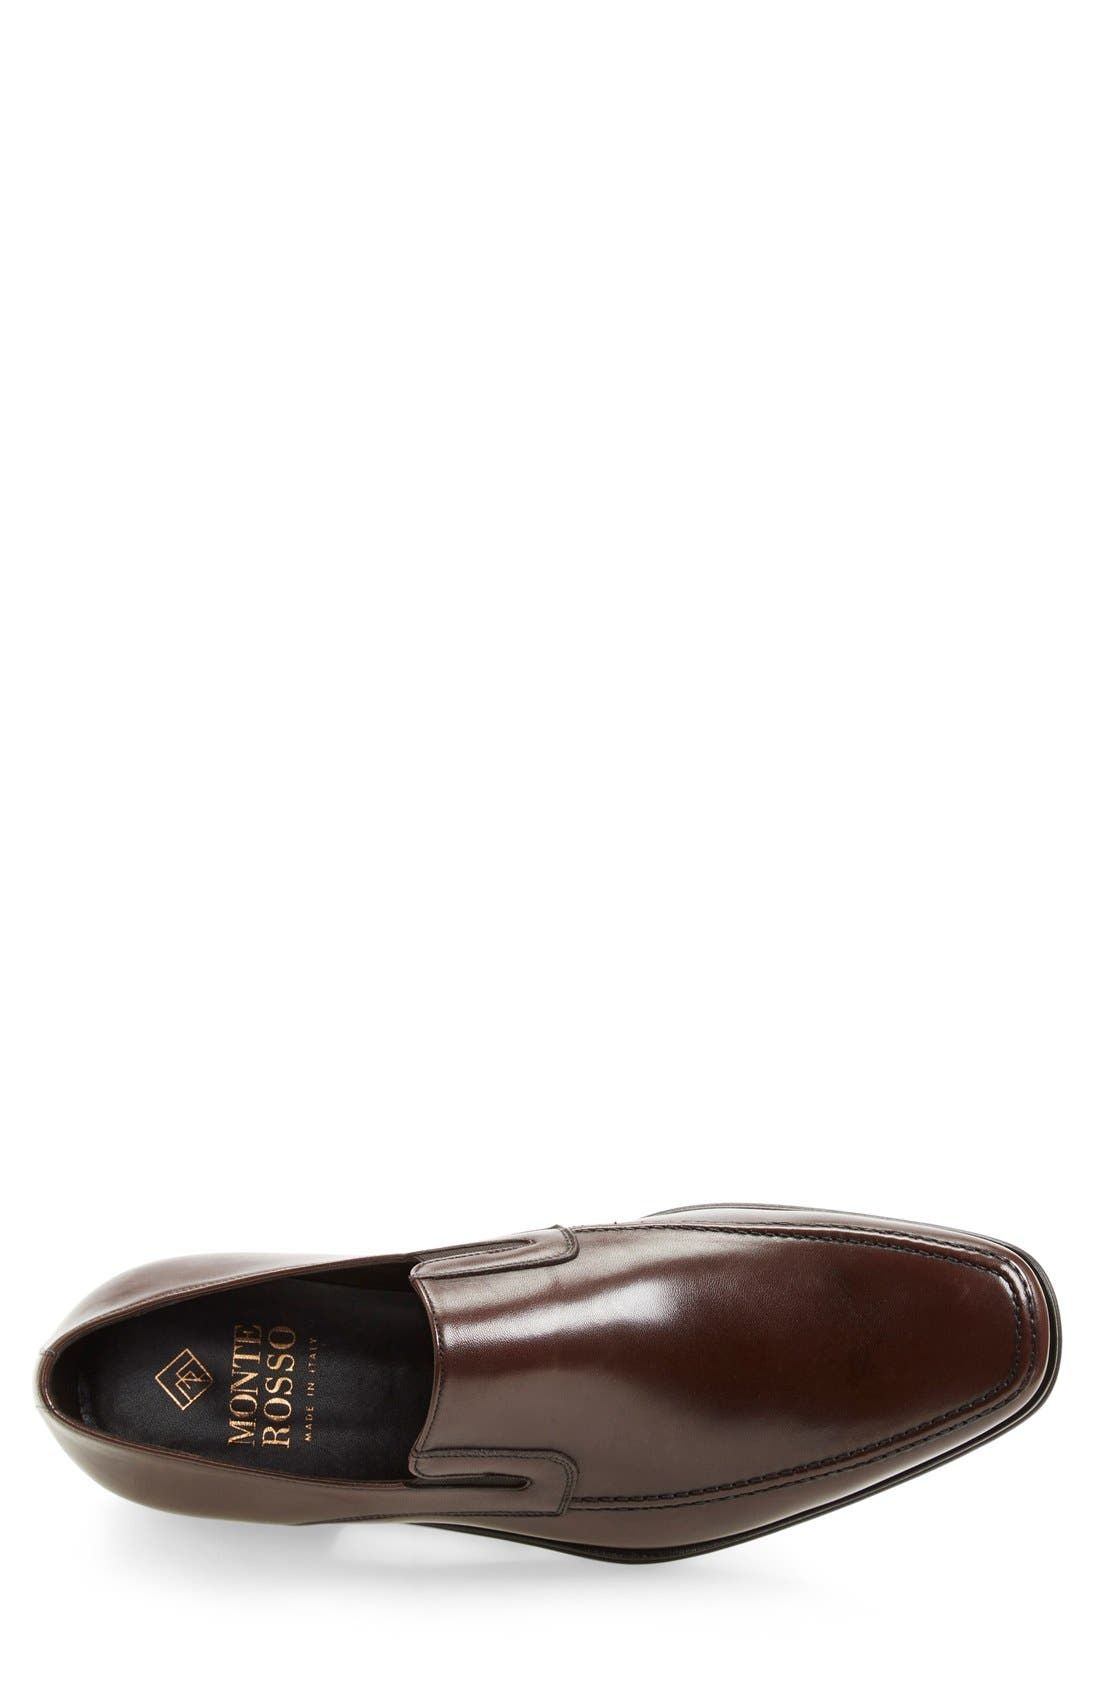 Lucca Nappa Leather Loafer,                             Alternate thumbnail 3, color,                             BROWN